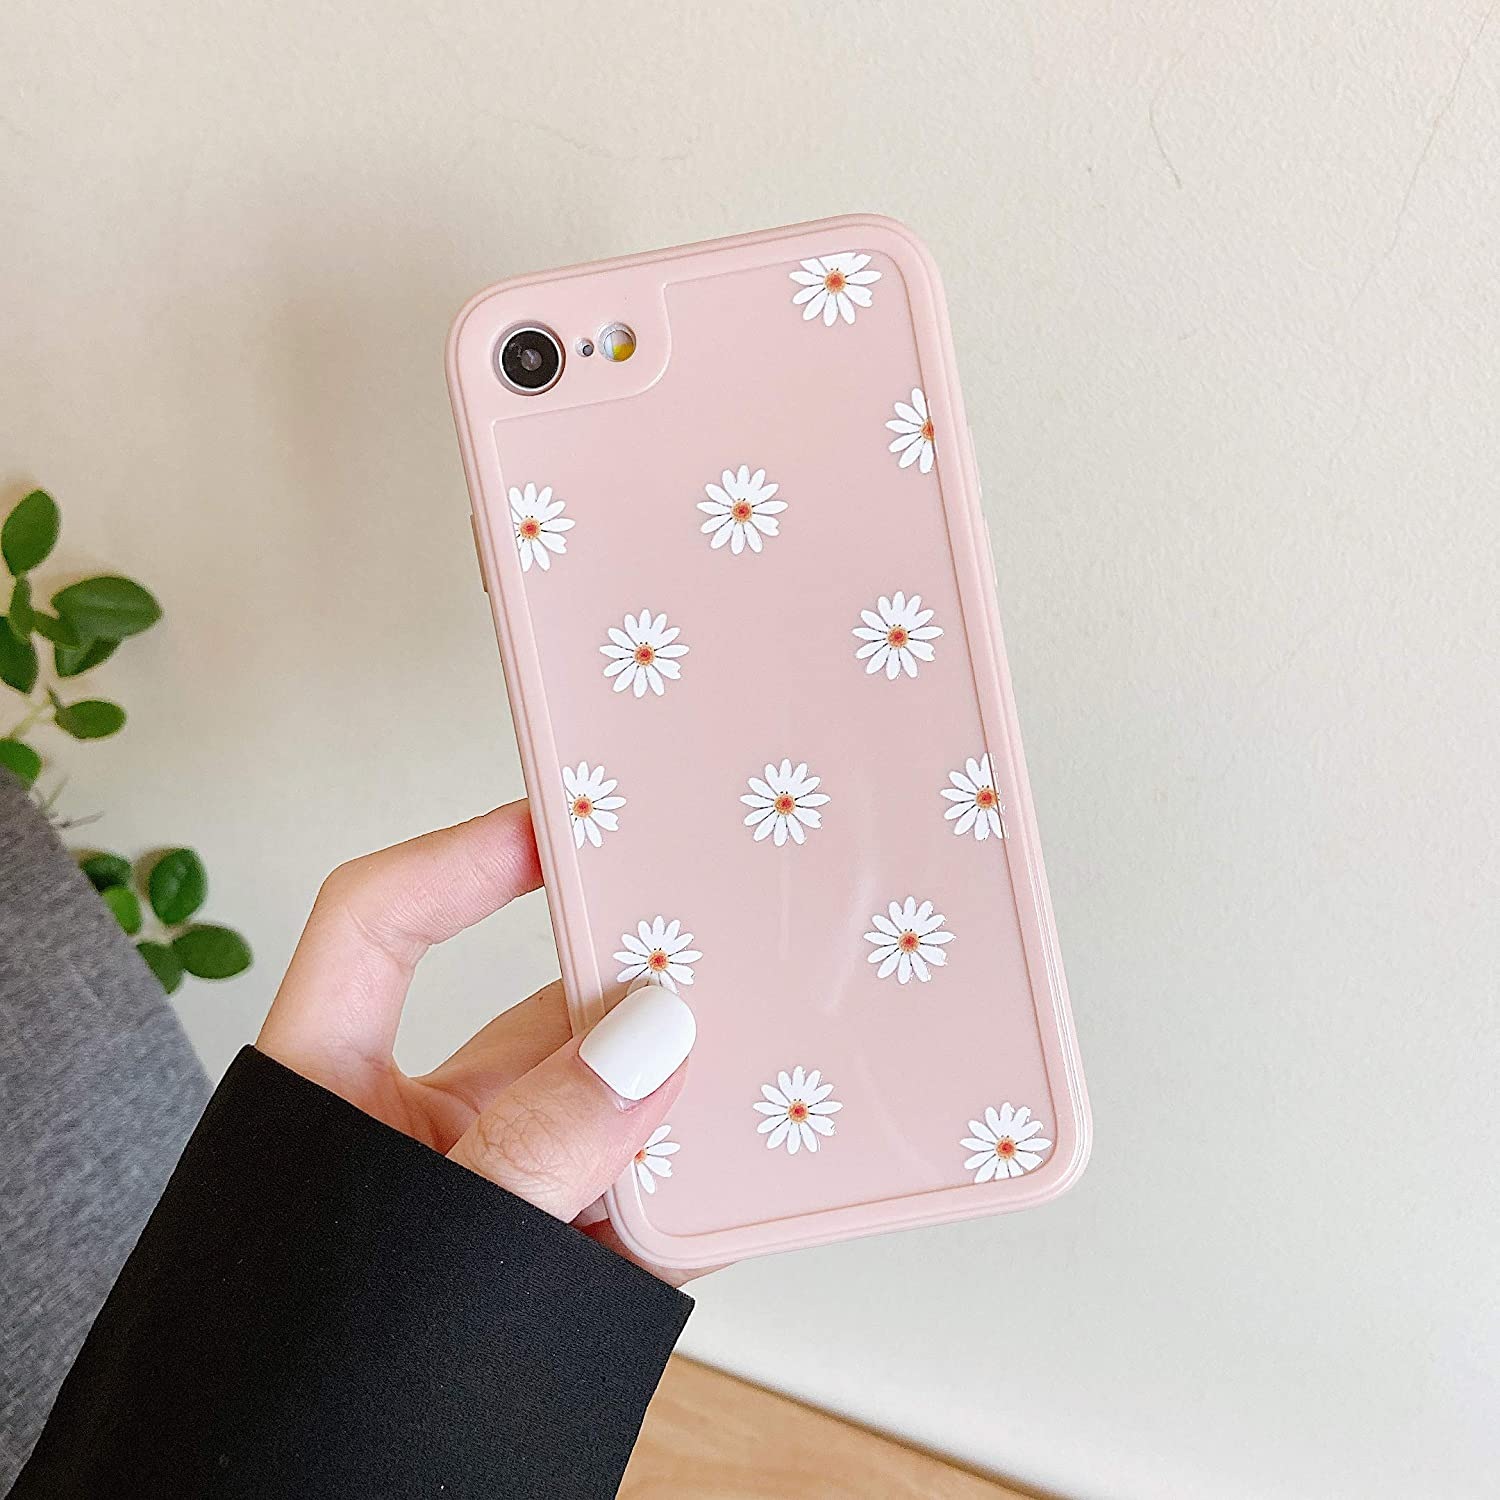 ZTOFERA TPU Back Case for iPhone 7 iPhone 8 iPhone SE 2020, Daisy Pattern Glossy Soft Silicone Case, Cute Girls Slim Lightweight Protective Bumper Cover for iPhone 7 (4.7